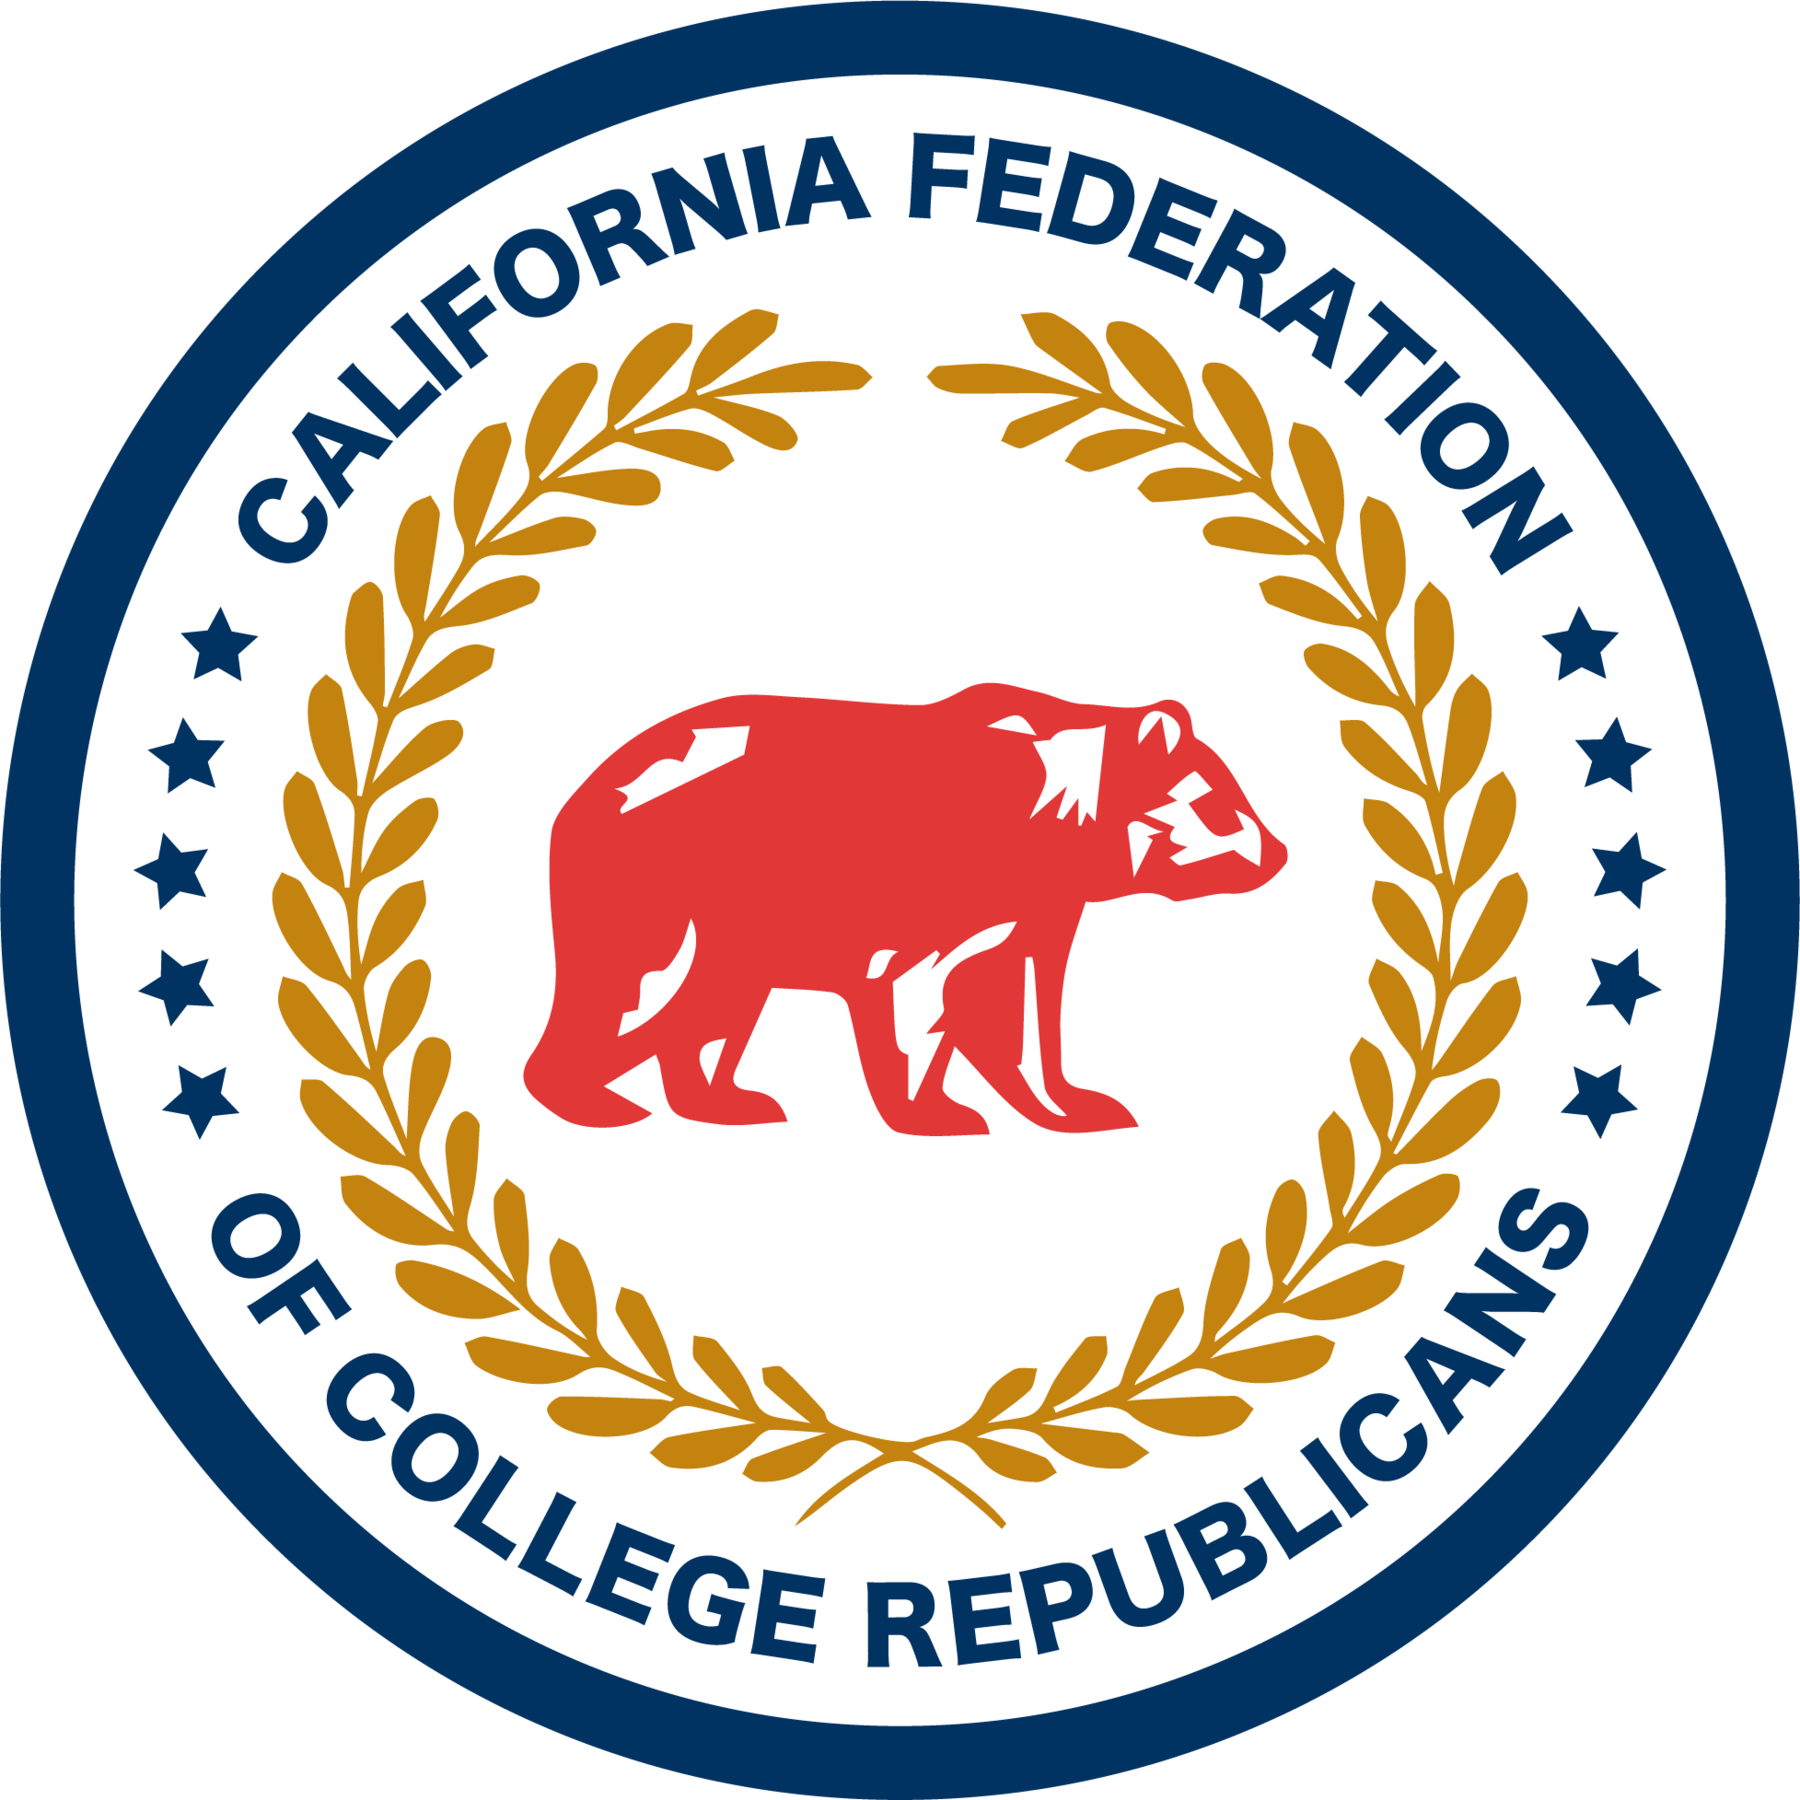 California Federation of College Republicans: General Fund